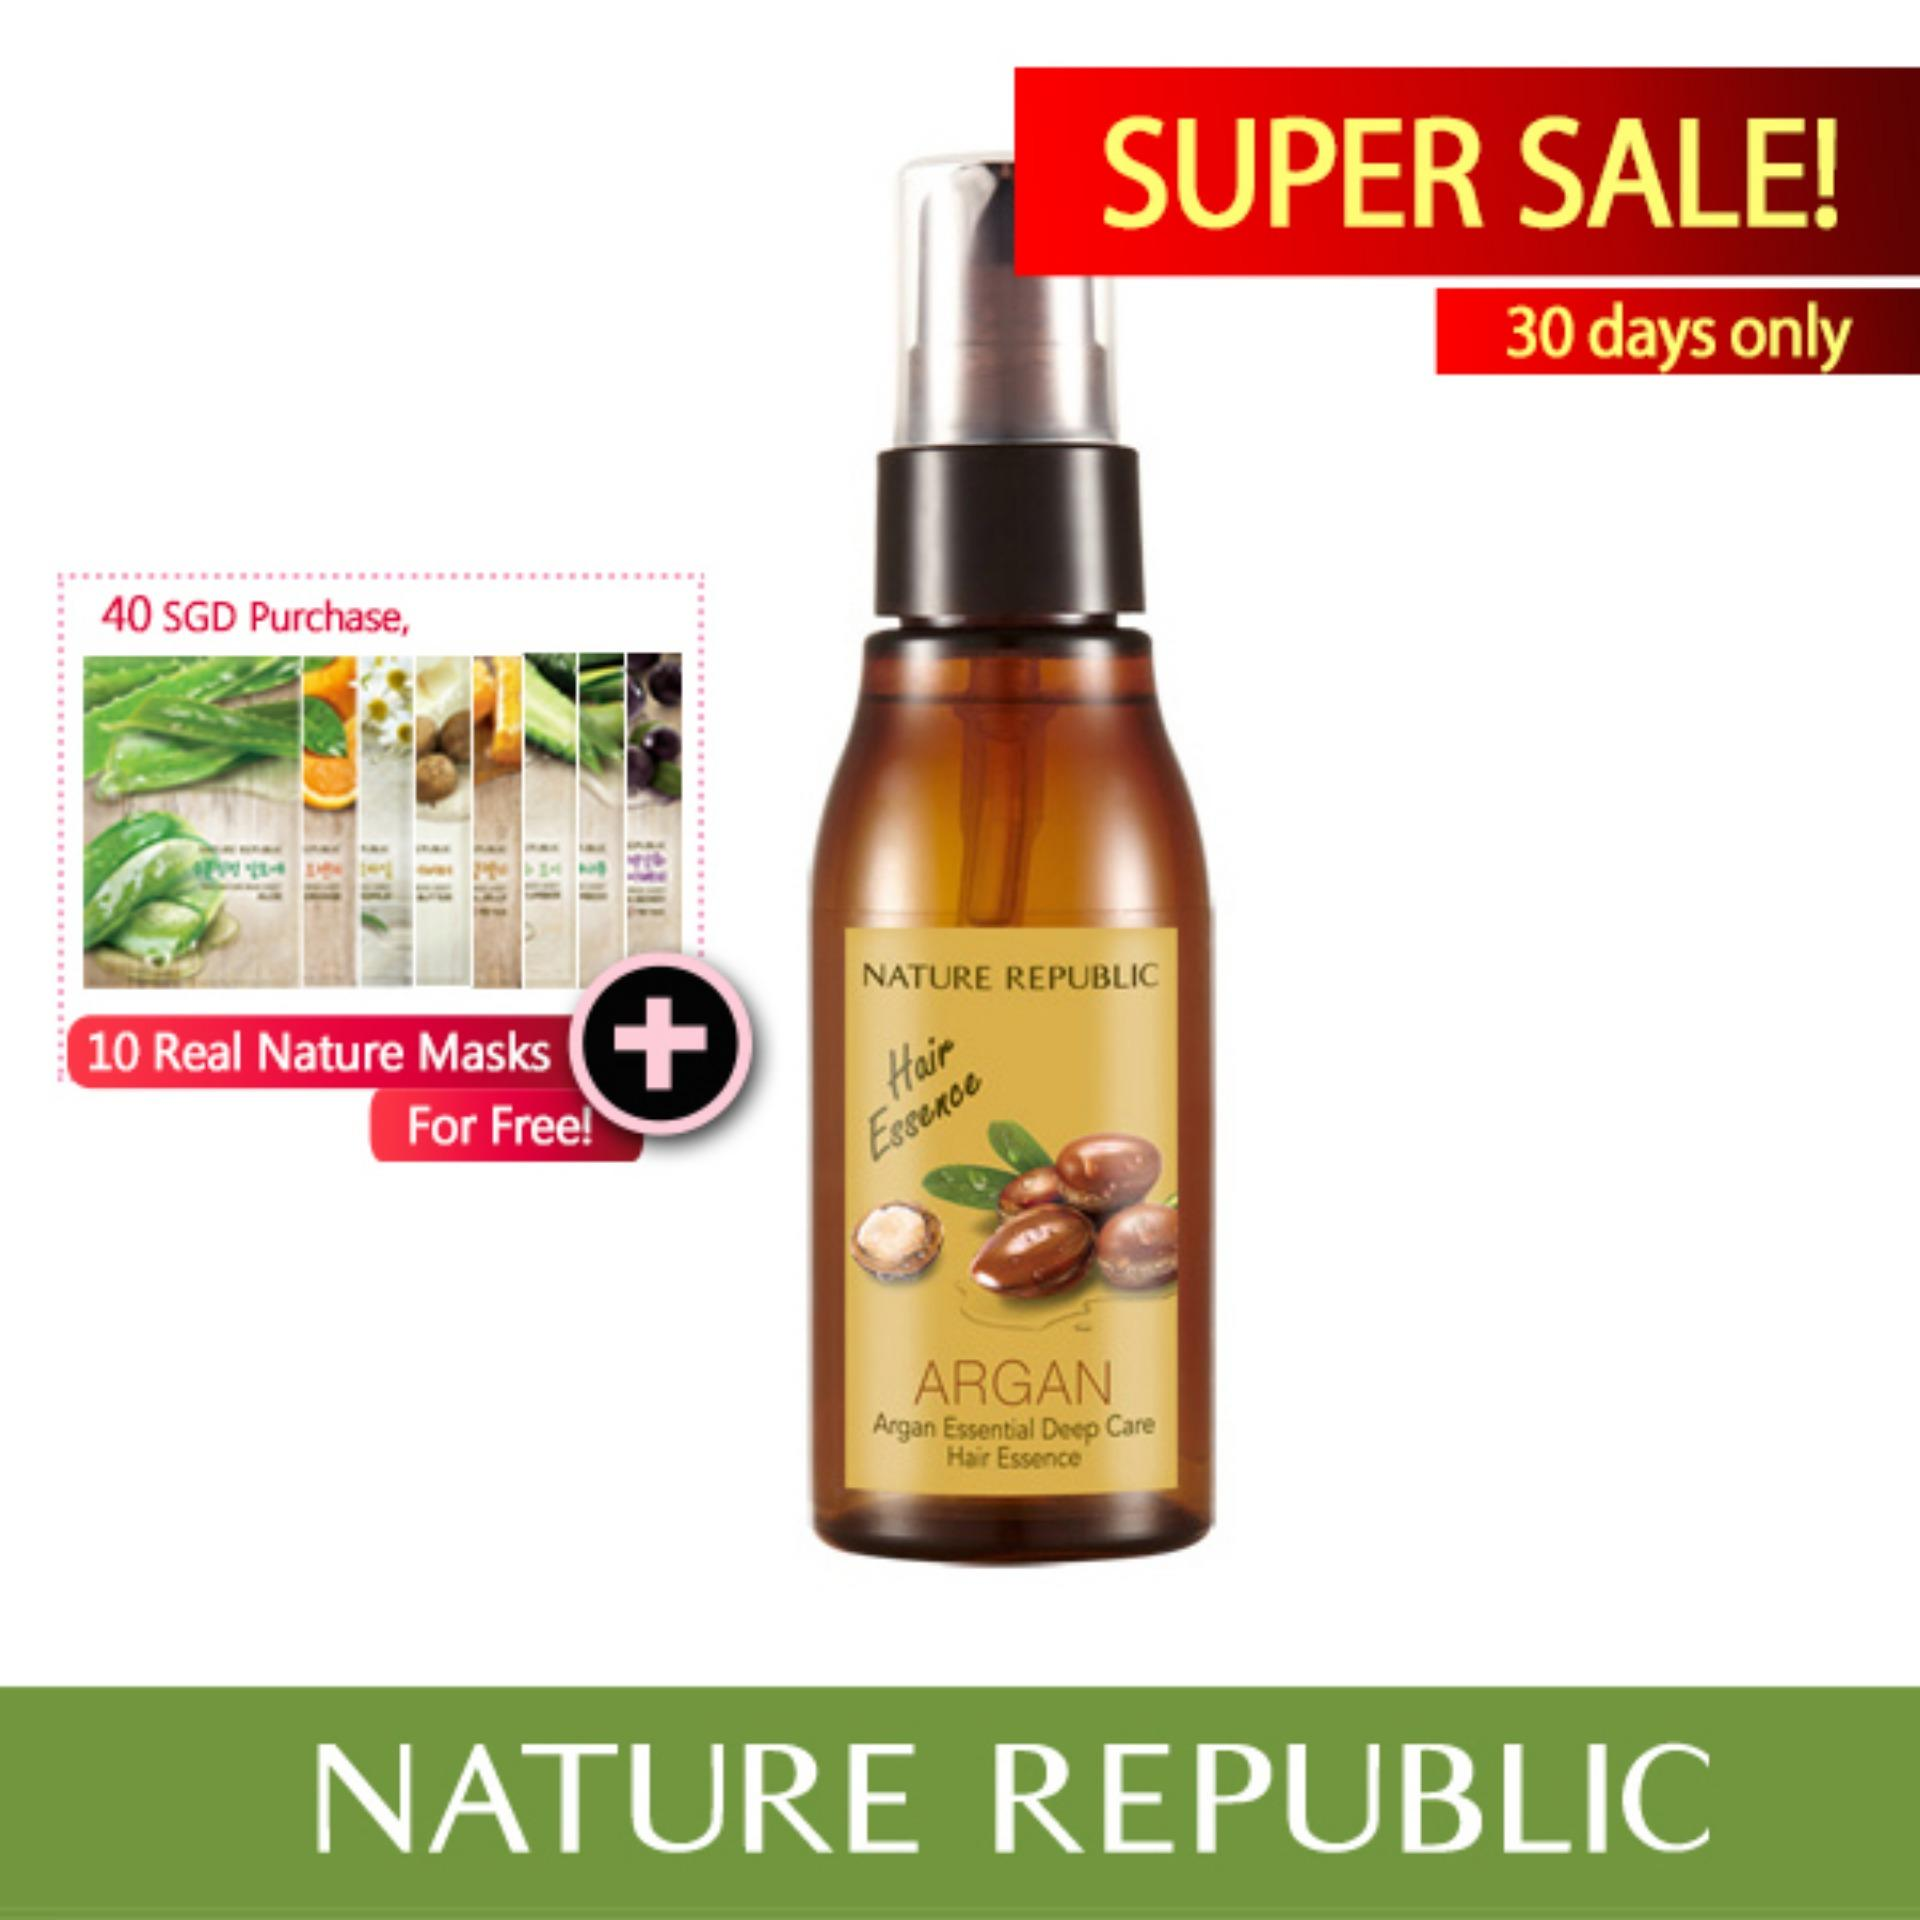 Who Sells The Cheapest Nature Republic Argan Essential Deep Care Hair Essence Online